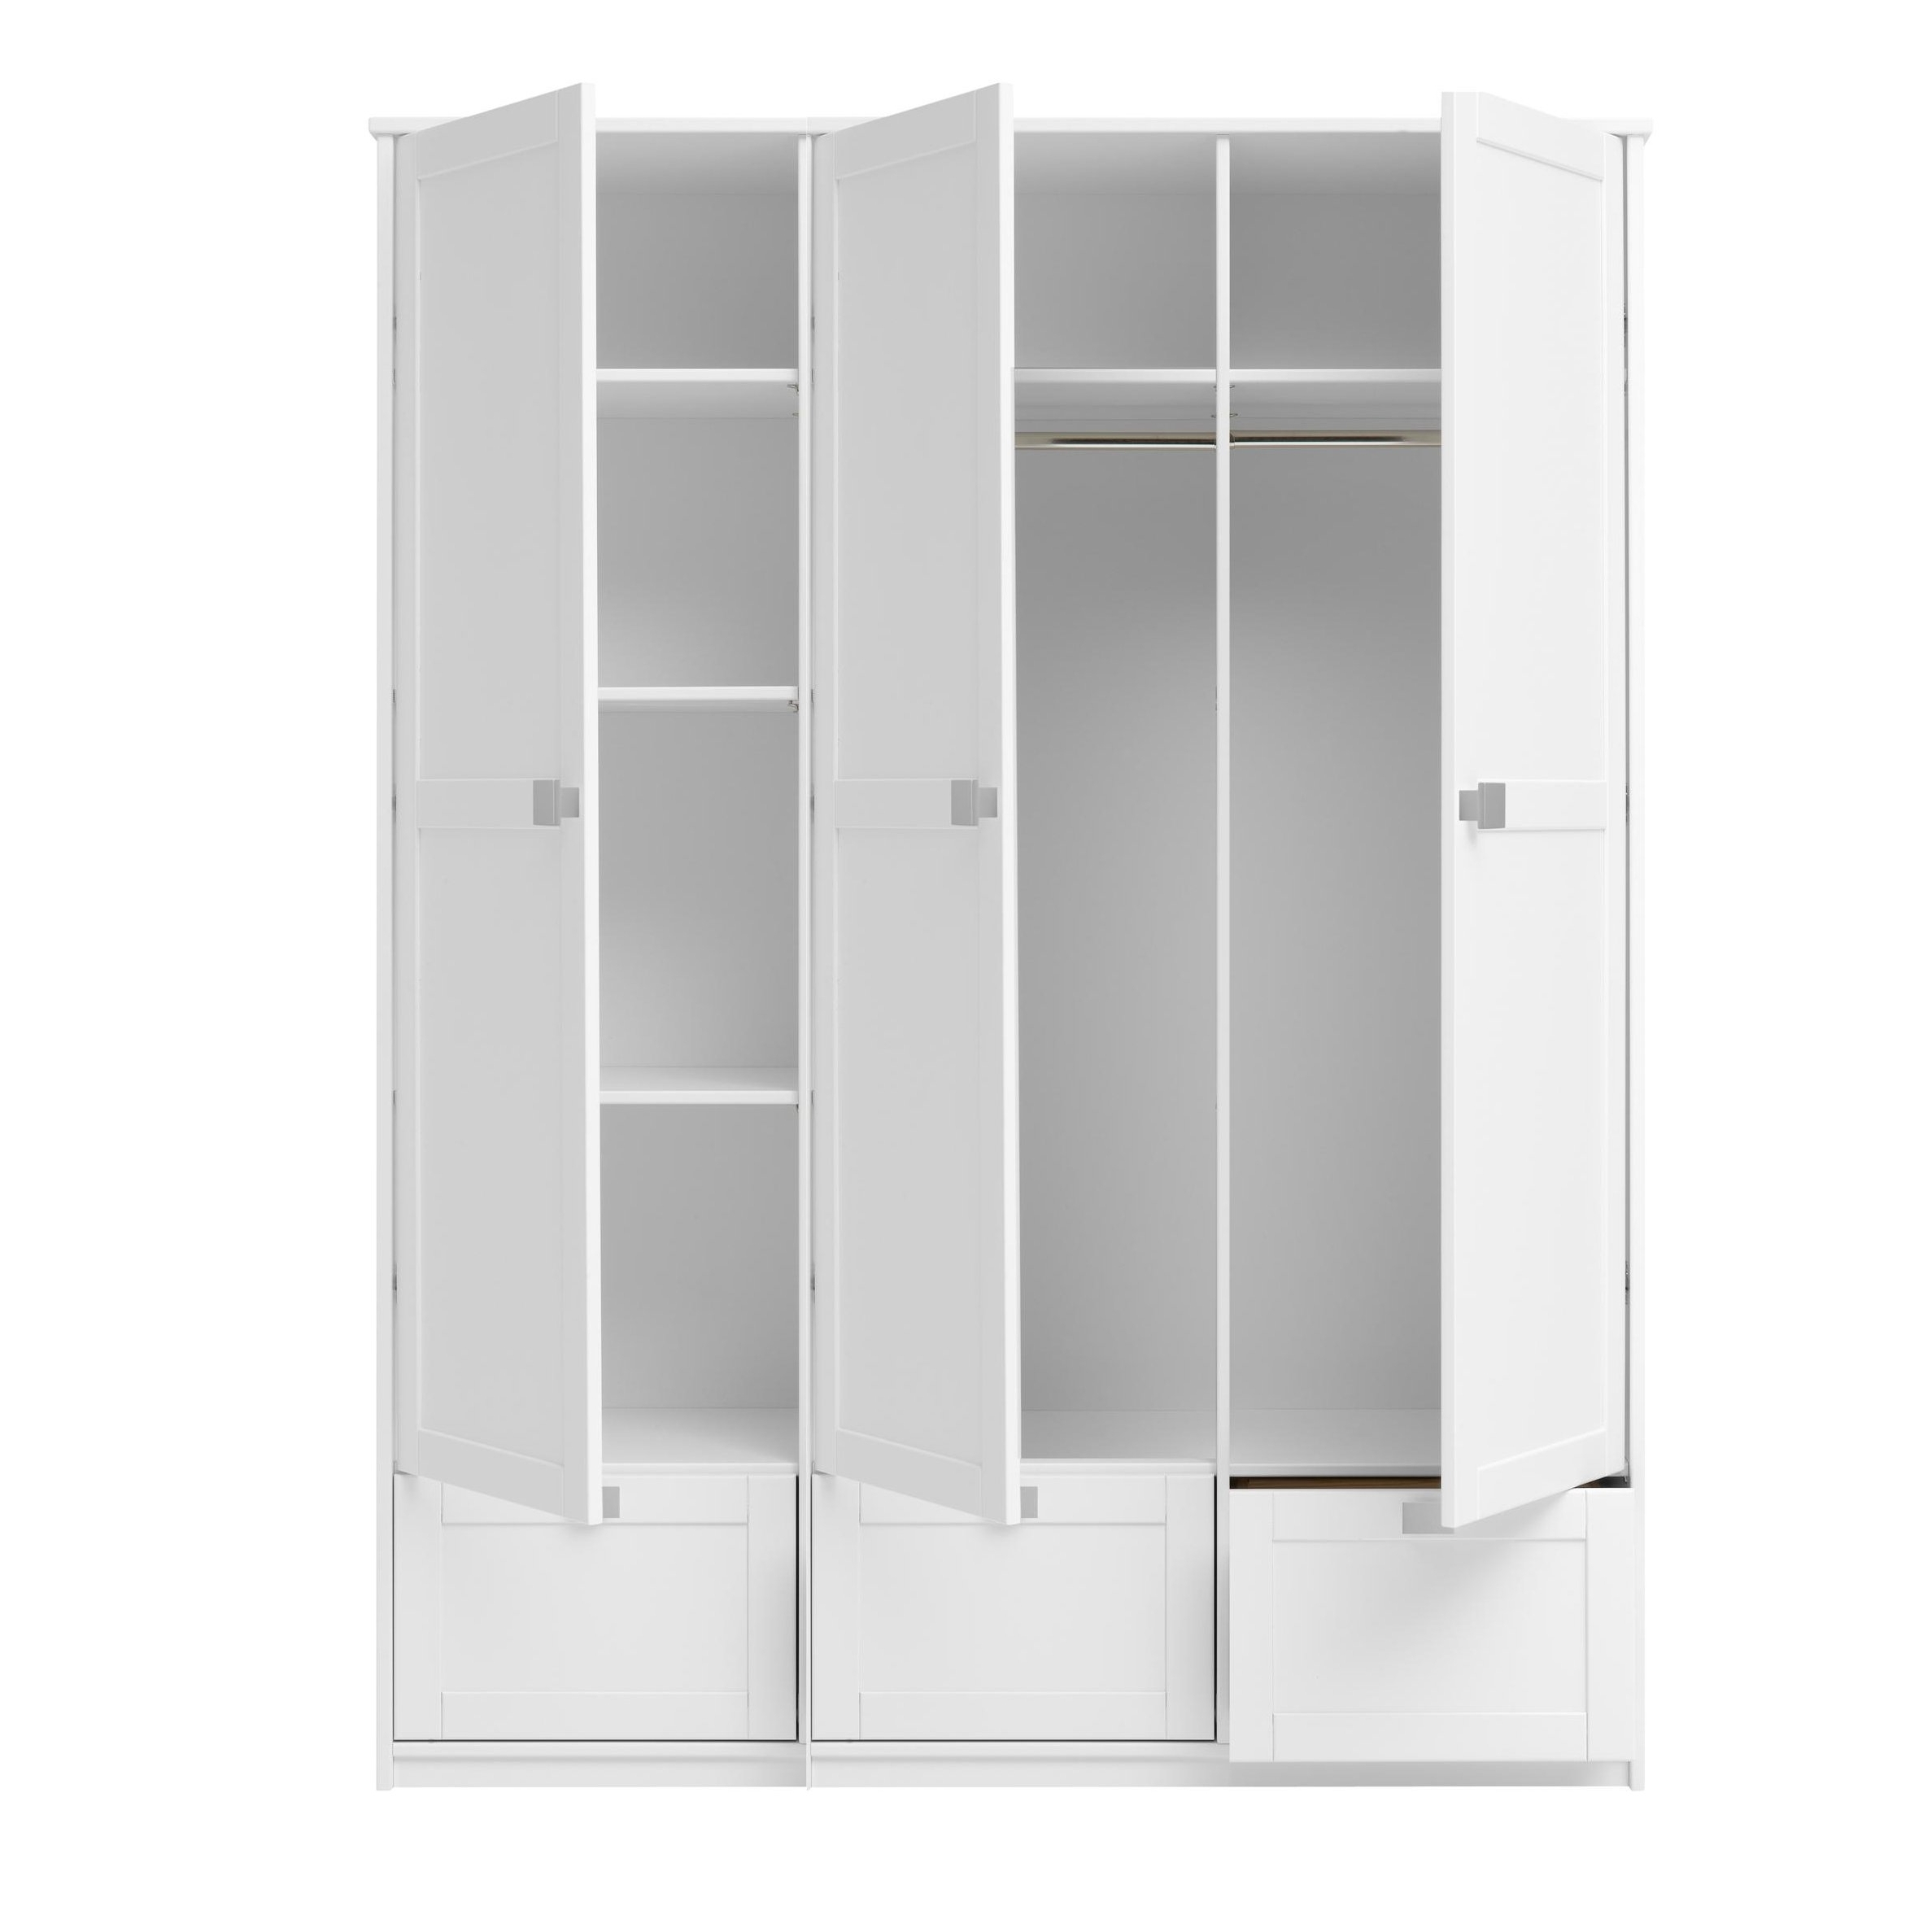 2018 White 3 Door Wardrobe With Drawers And Mirror Large Corner Argos 2 For 3 Door White Wardrobes With Drawers (View 2 of 15)